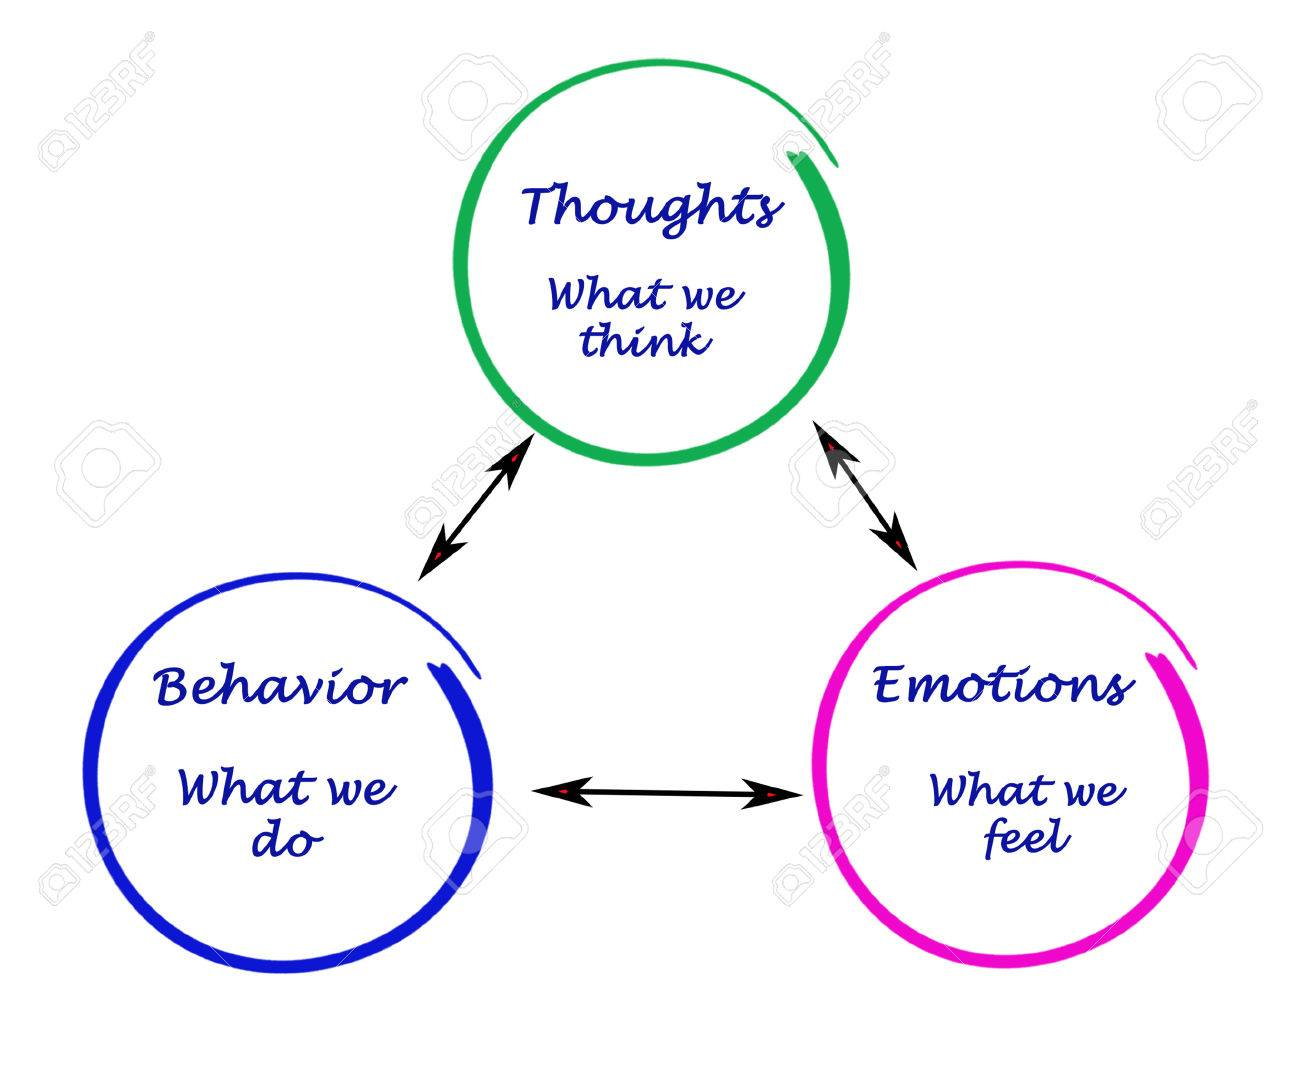 Relationship between cognition, emotions, and behavior Stock Photo - 37032568